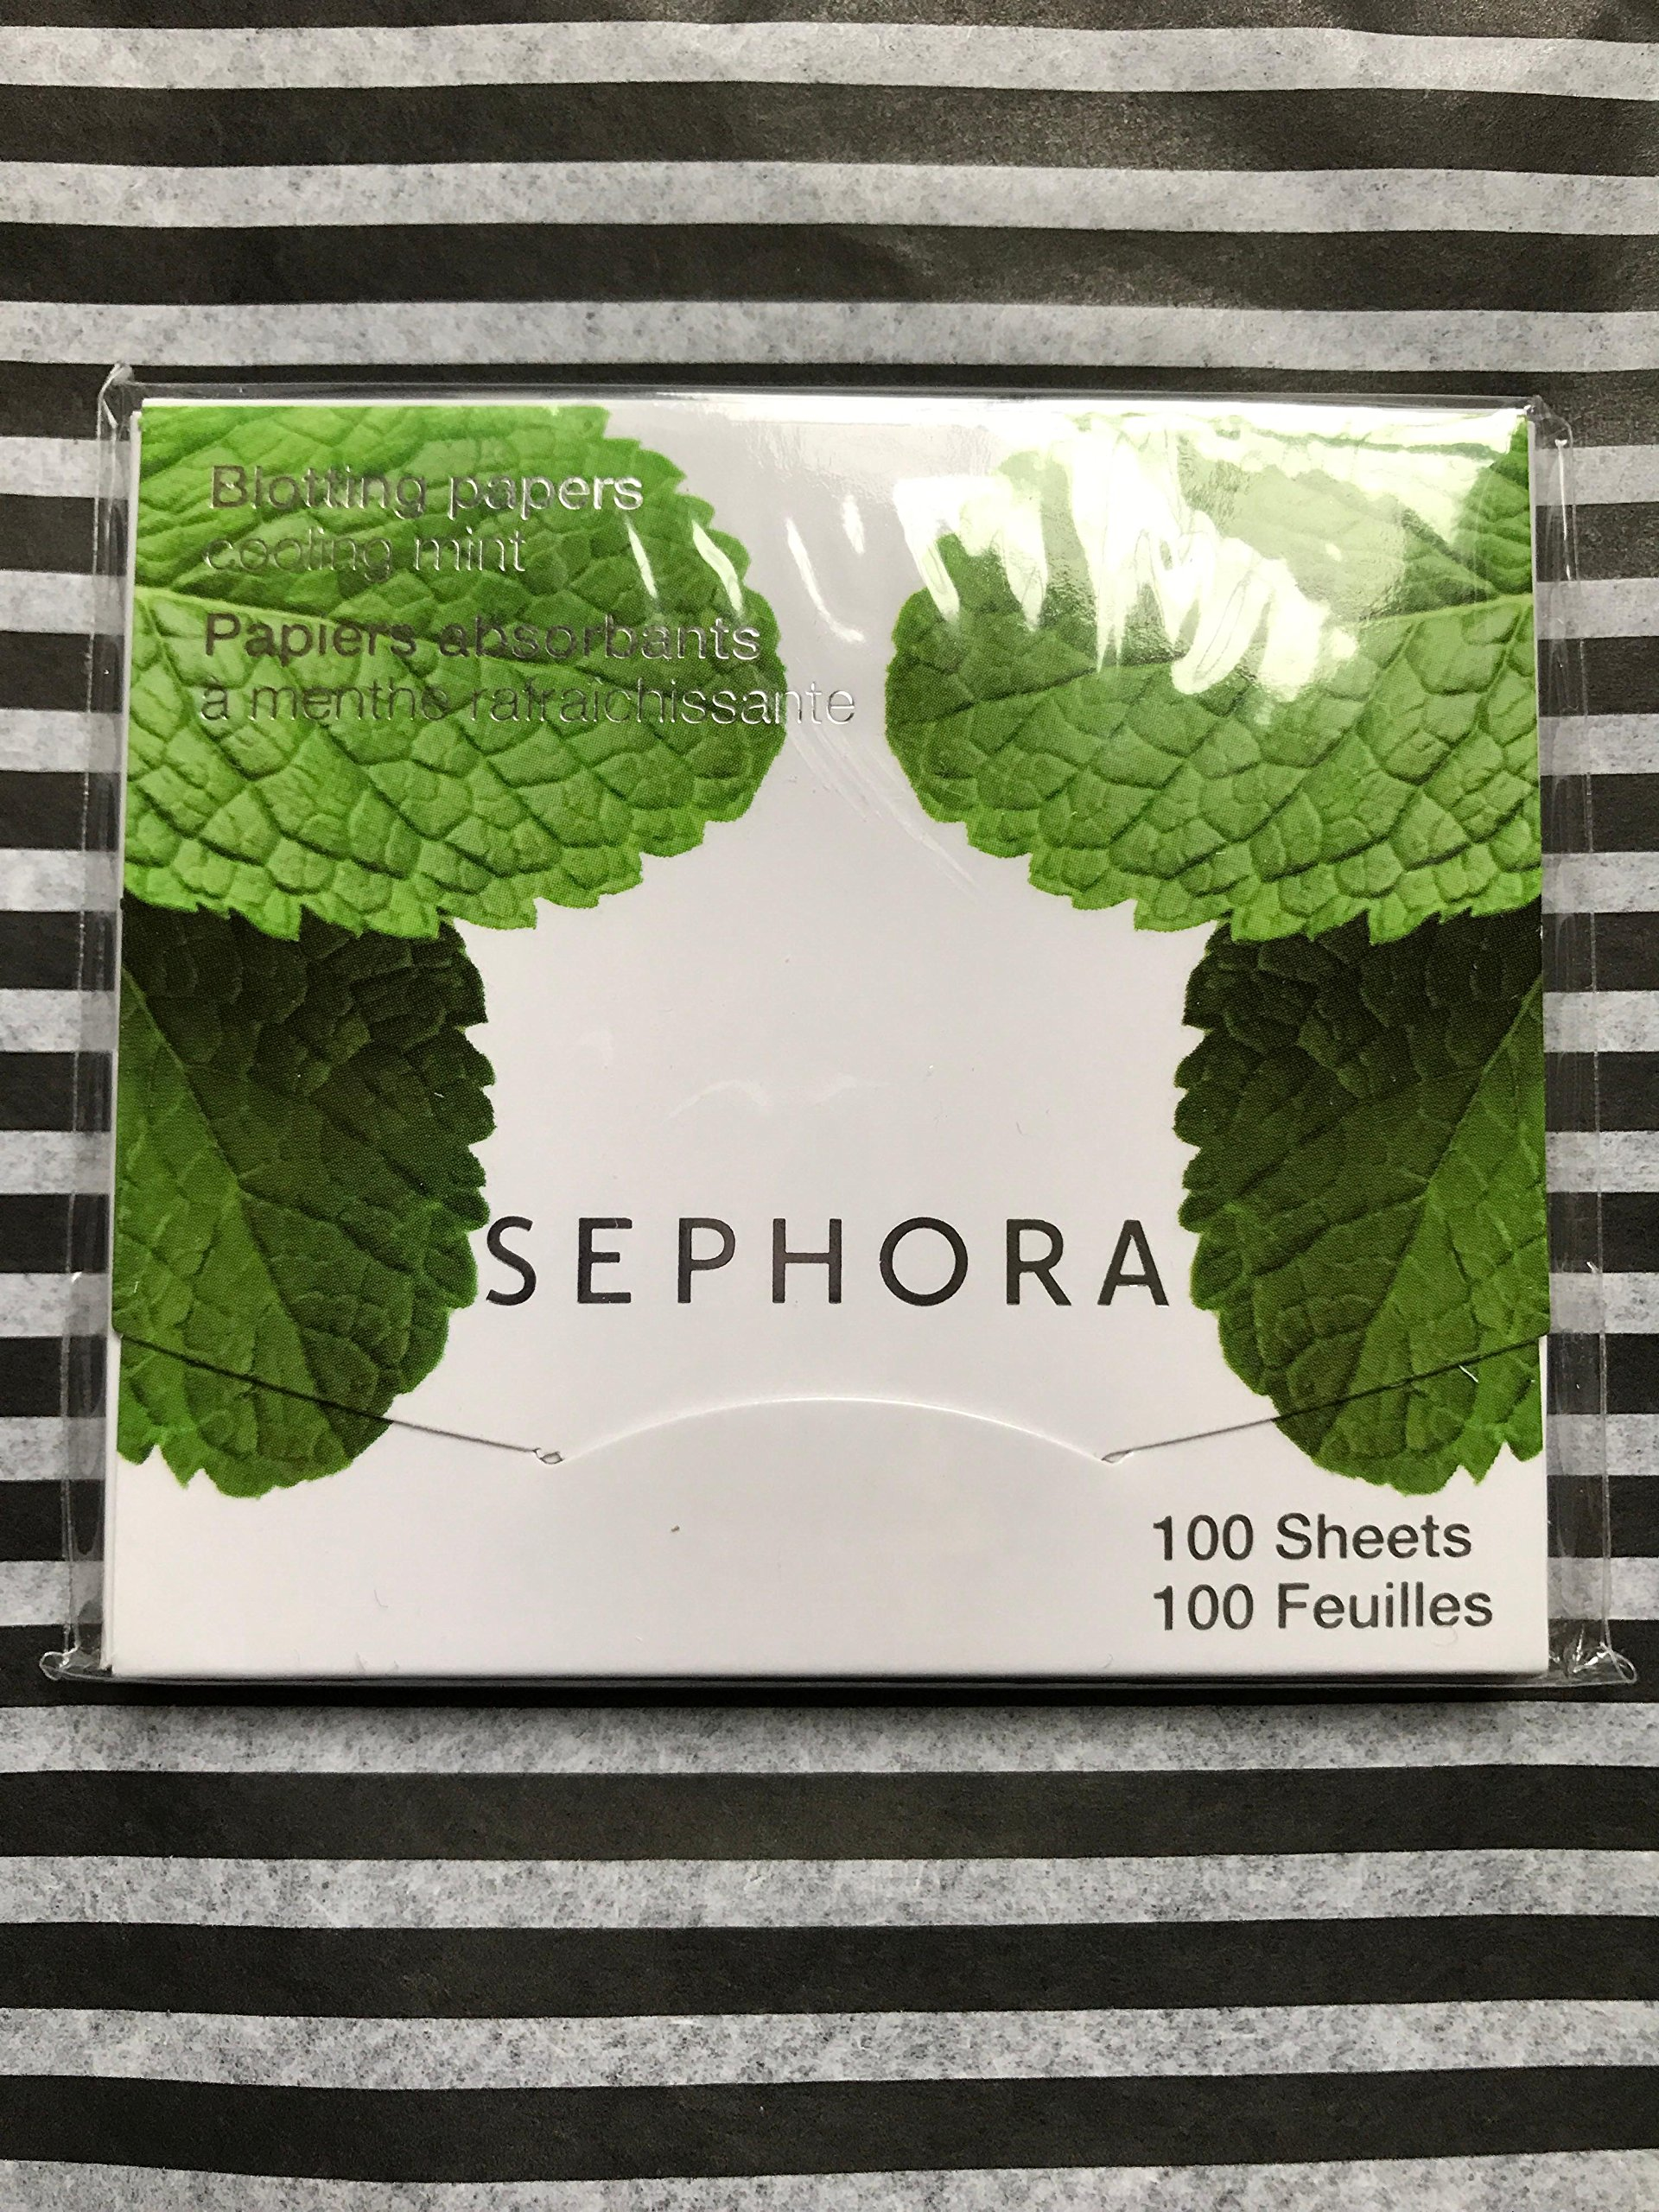 SEPHORA COLLECTION Blotting Papers SIZE 100 Sheets COLOR: Cooling Mint